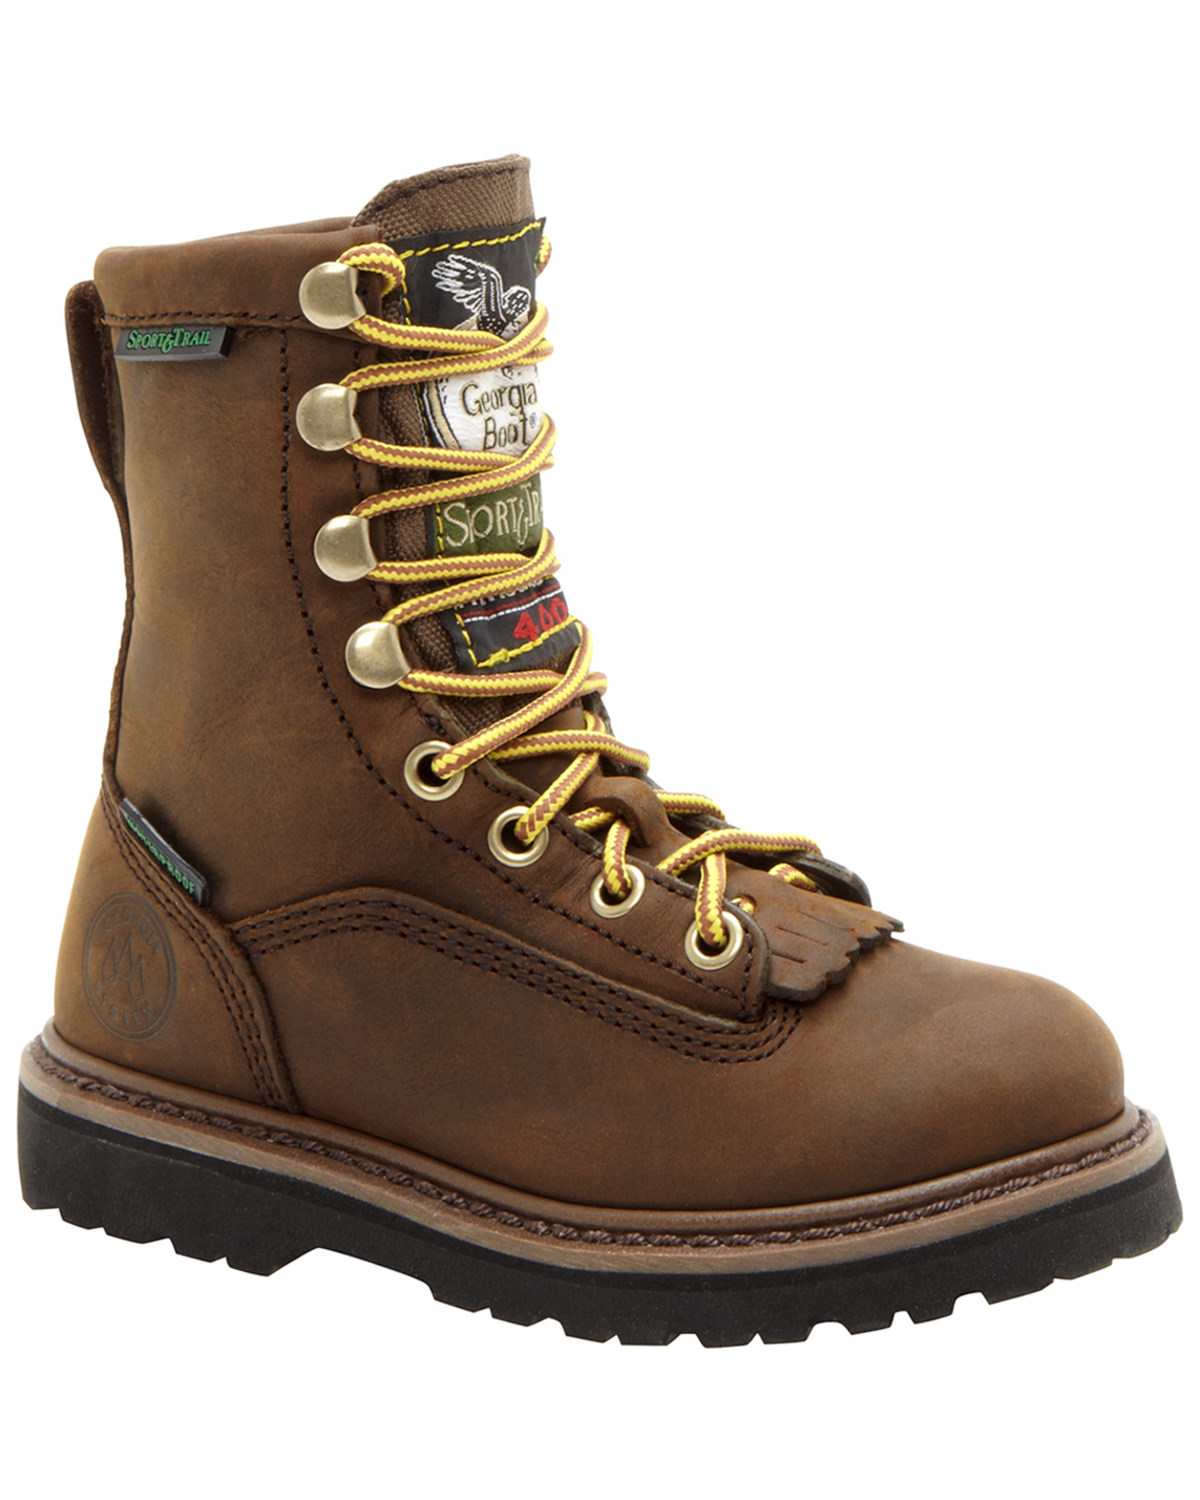 Georgia Boys' Insulated Outdoor Waterproof Lace-Up Boots ...